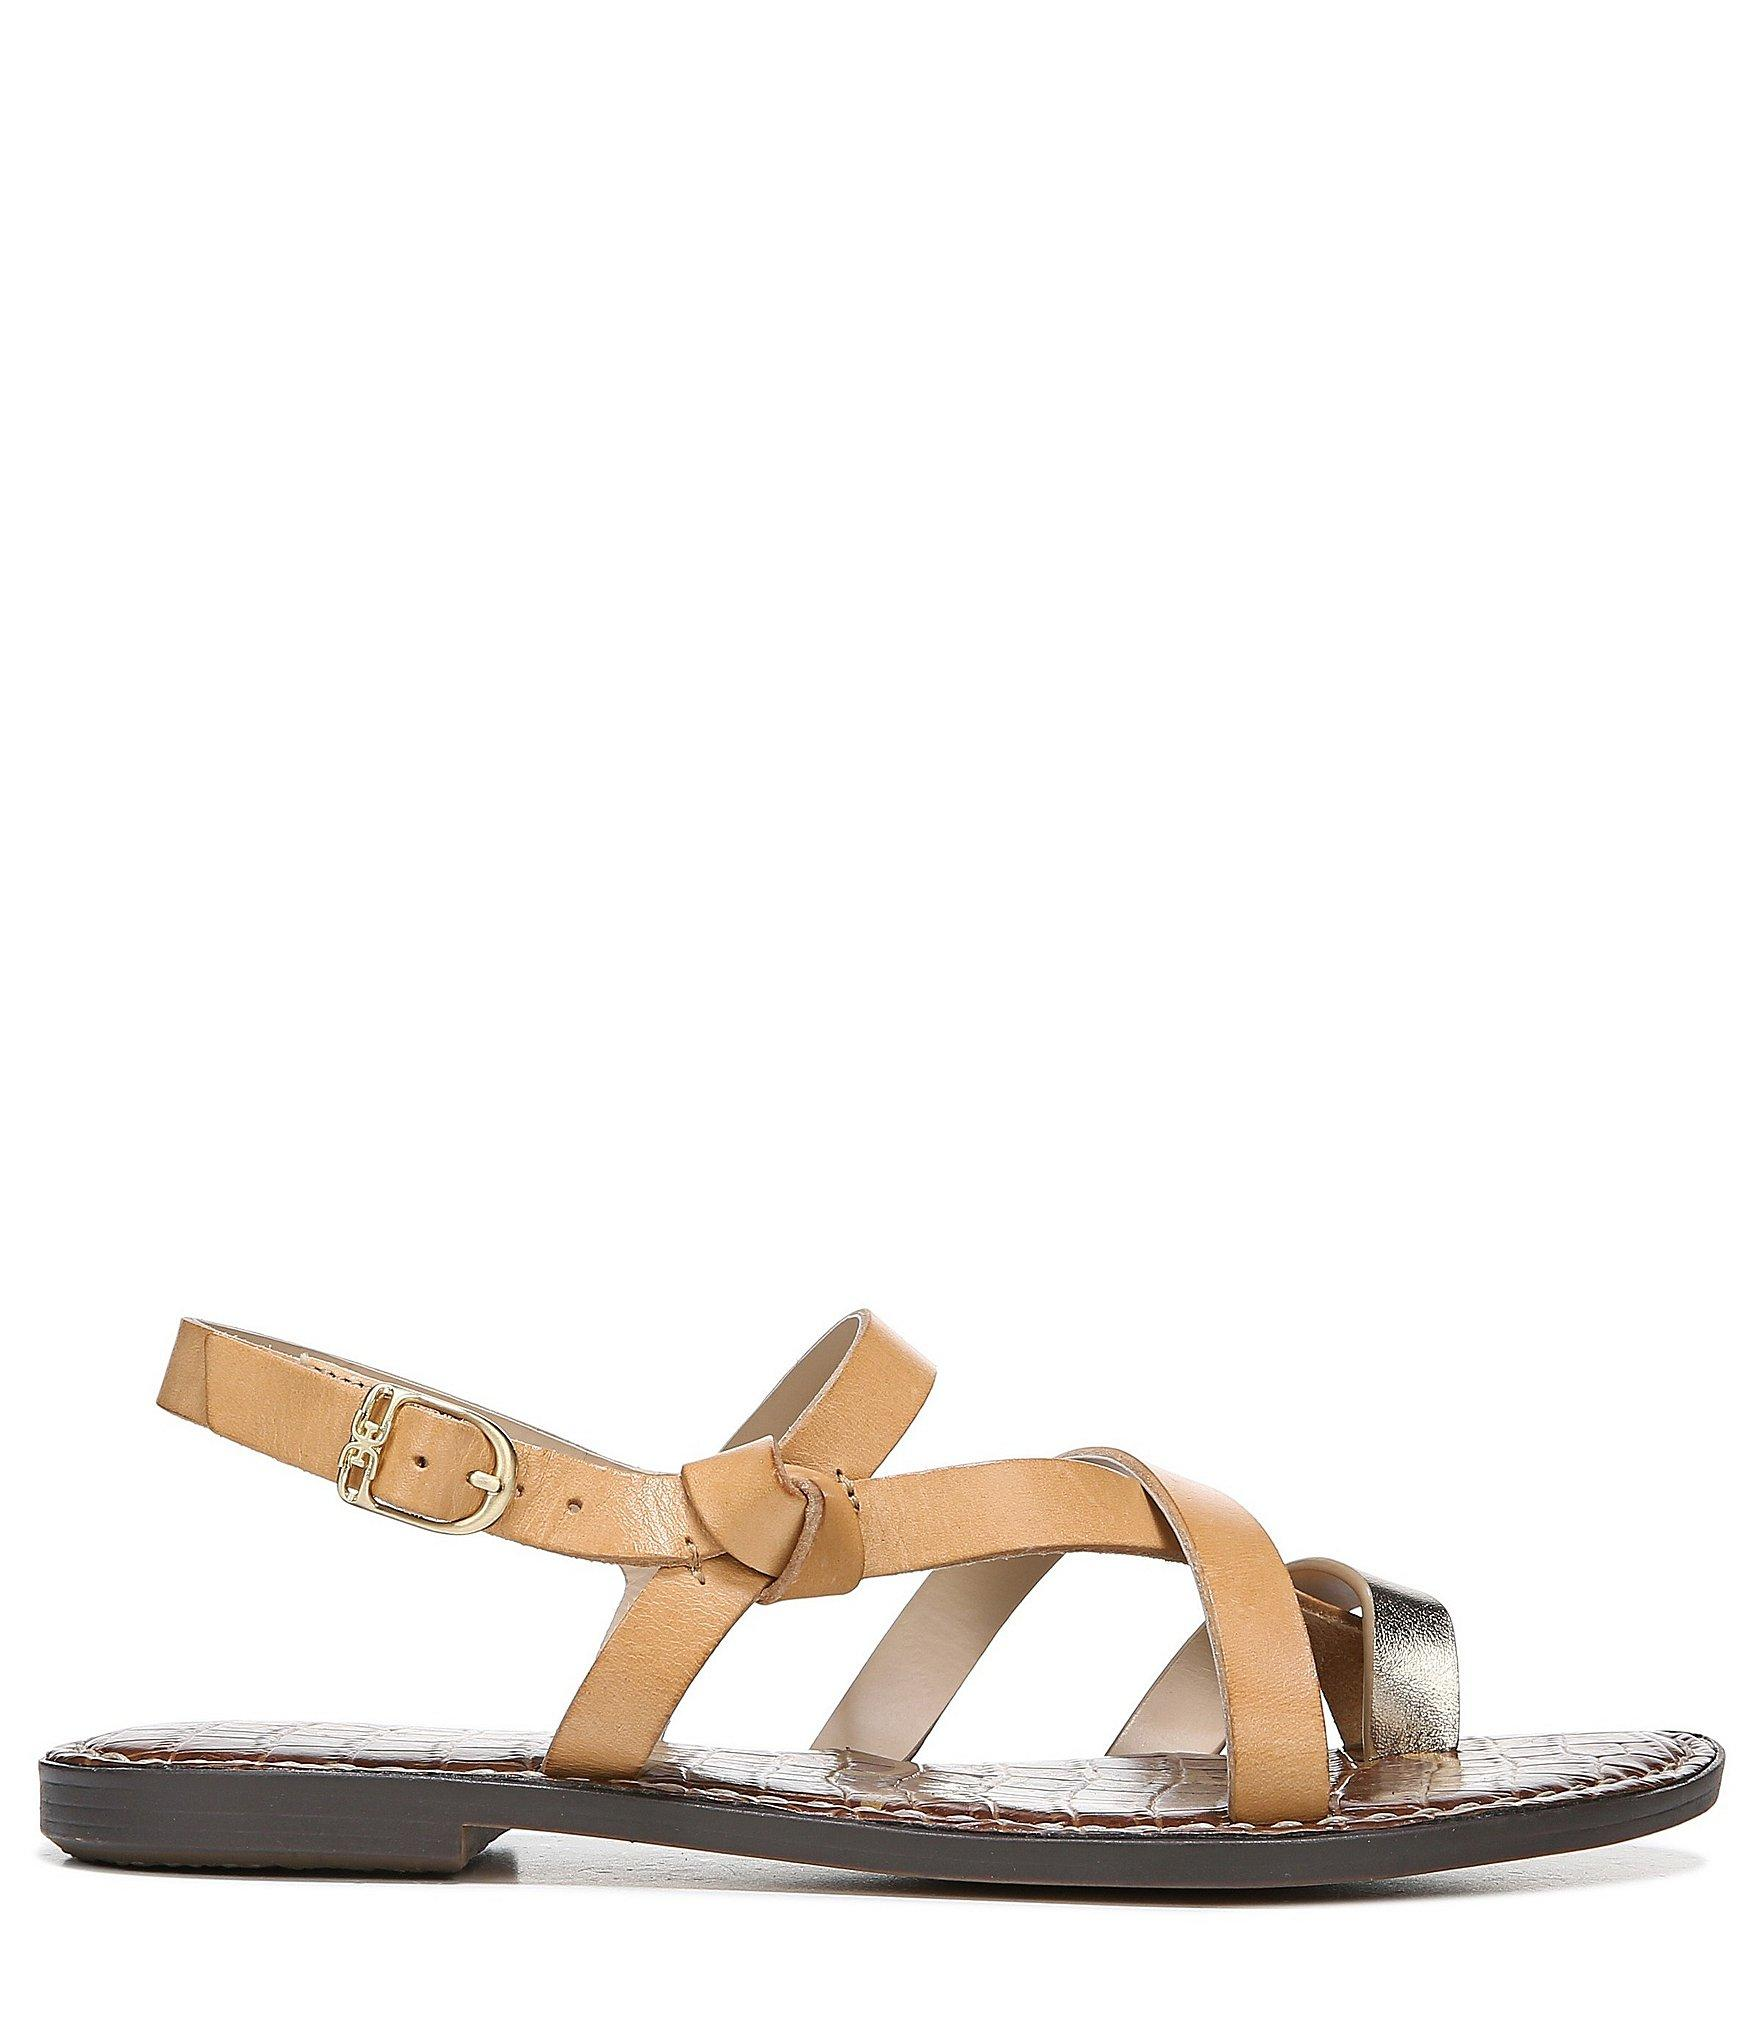 ded2f0aec5d9a Gladys Metallic Leather Sandals Clothes t Leather